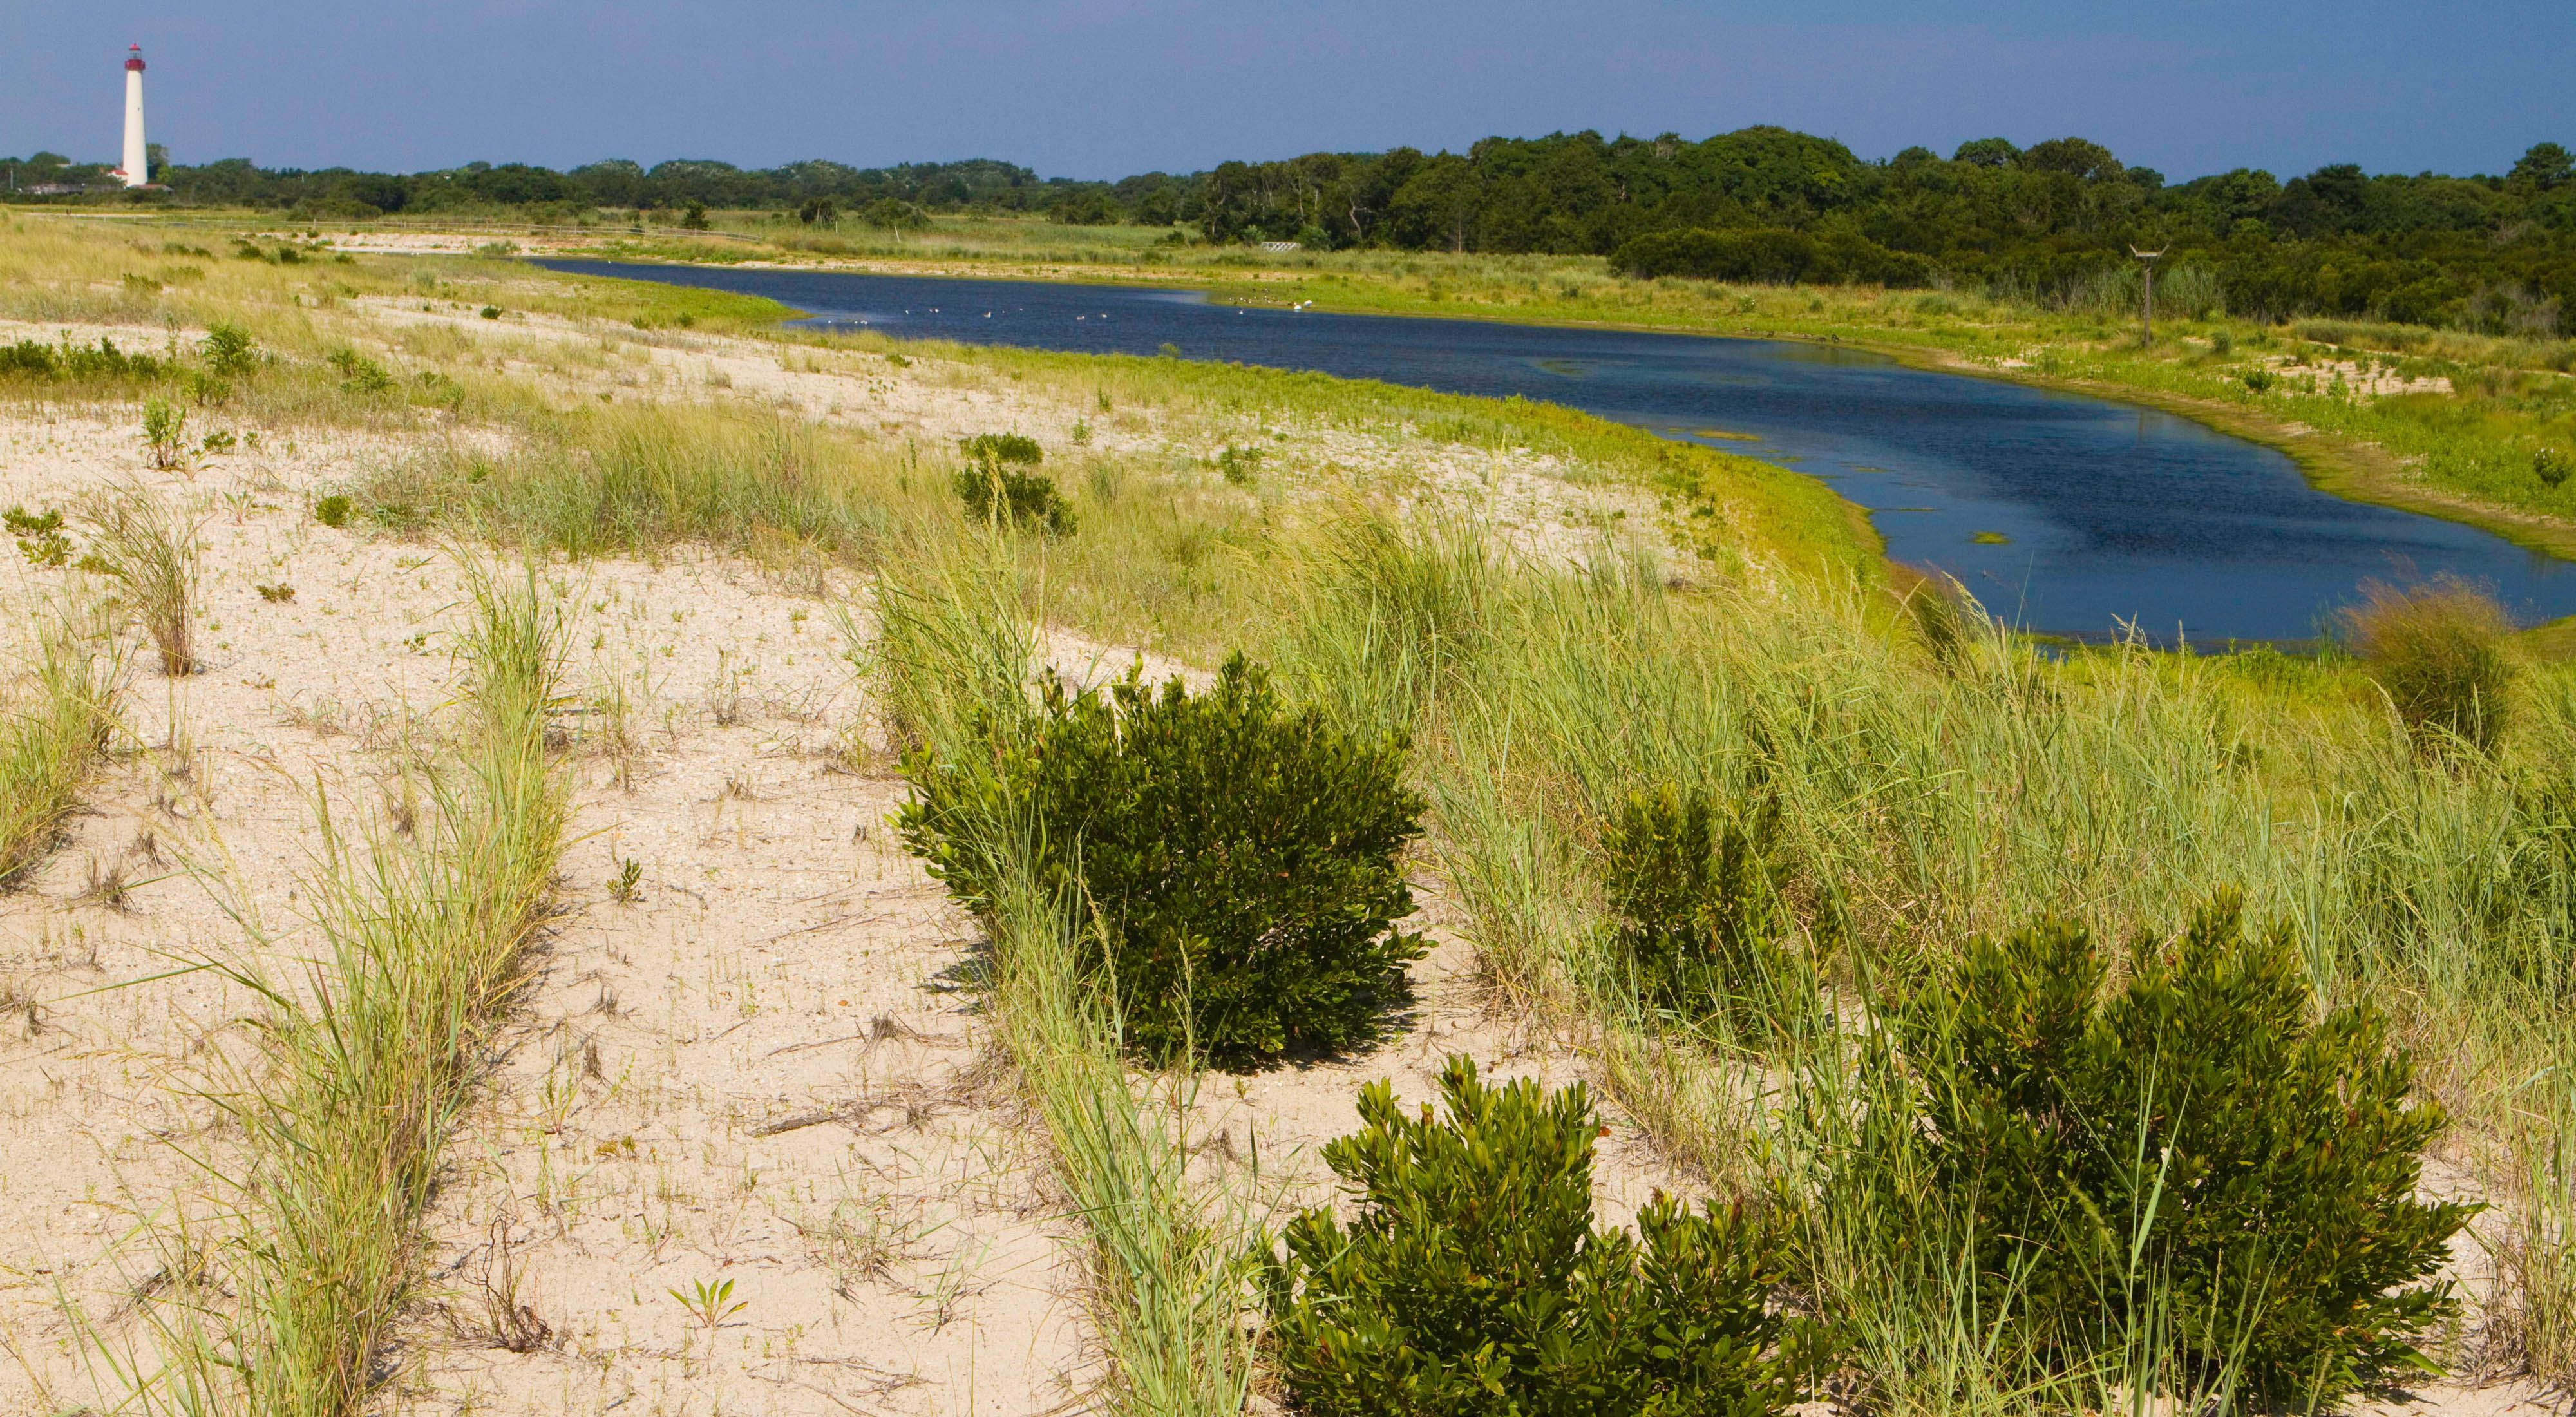 Grassy dunes and a lagoon at South Cape May Meadows Preserve.